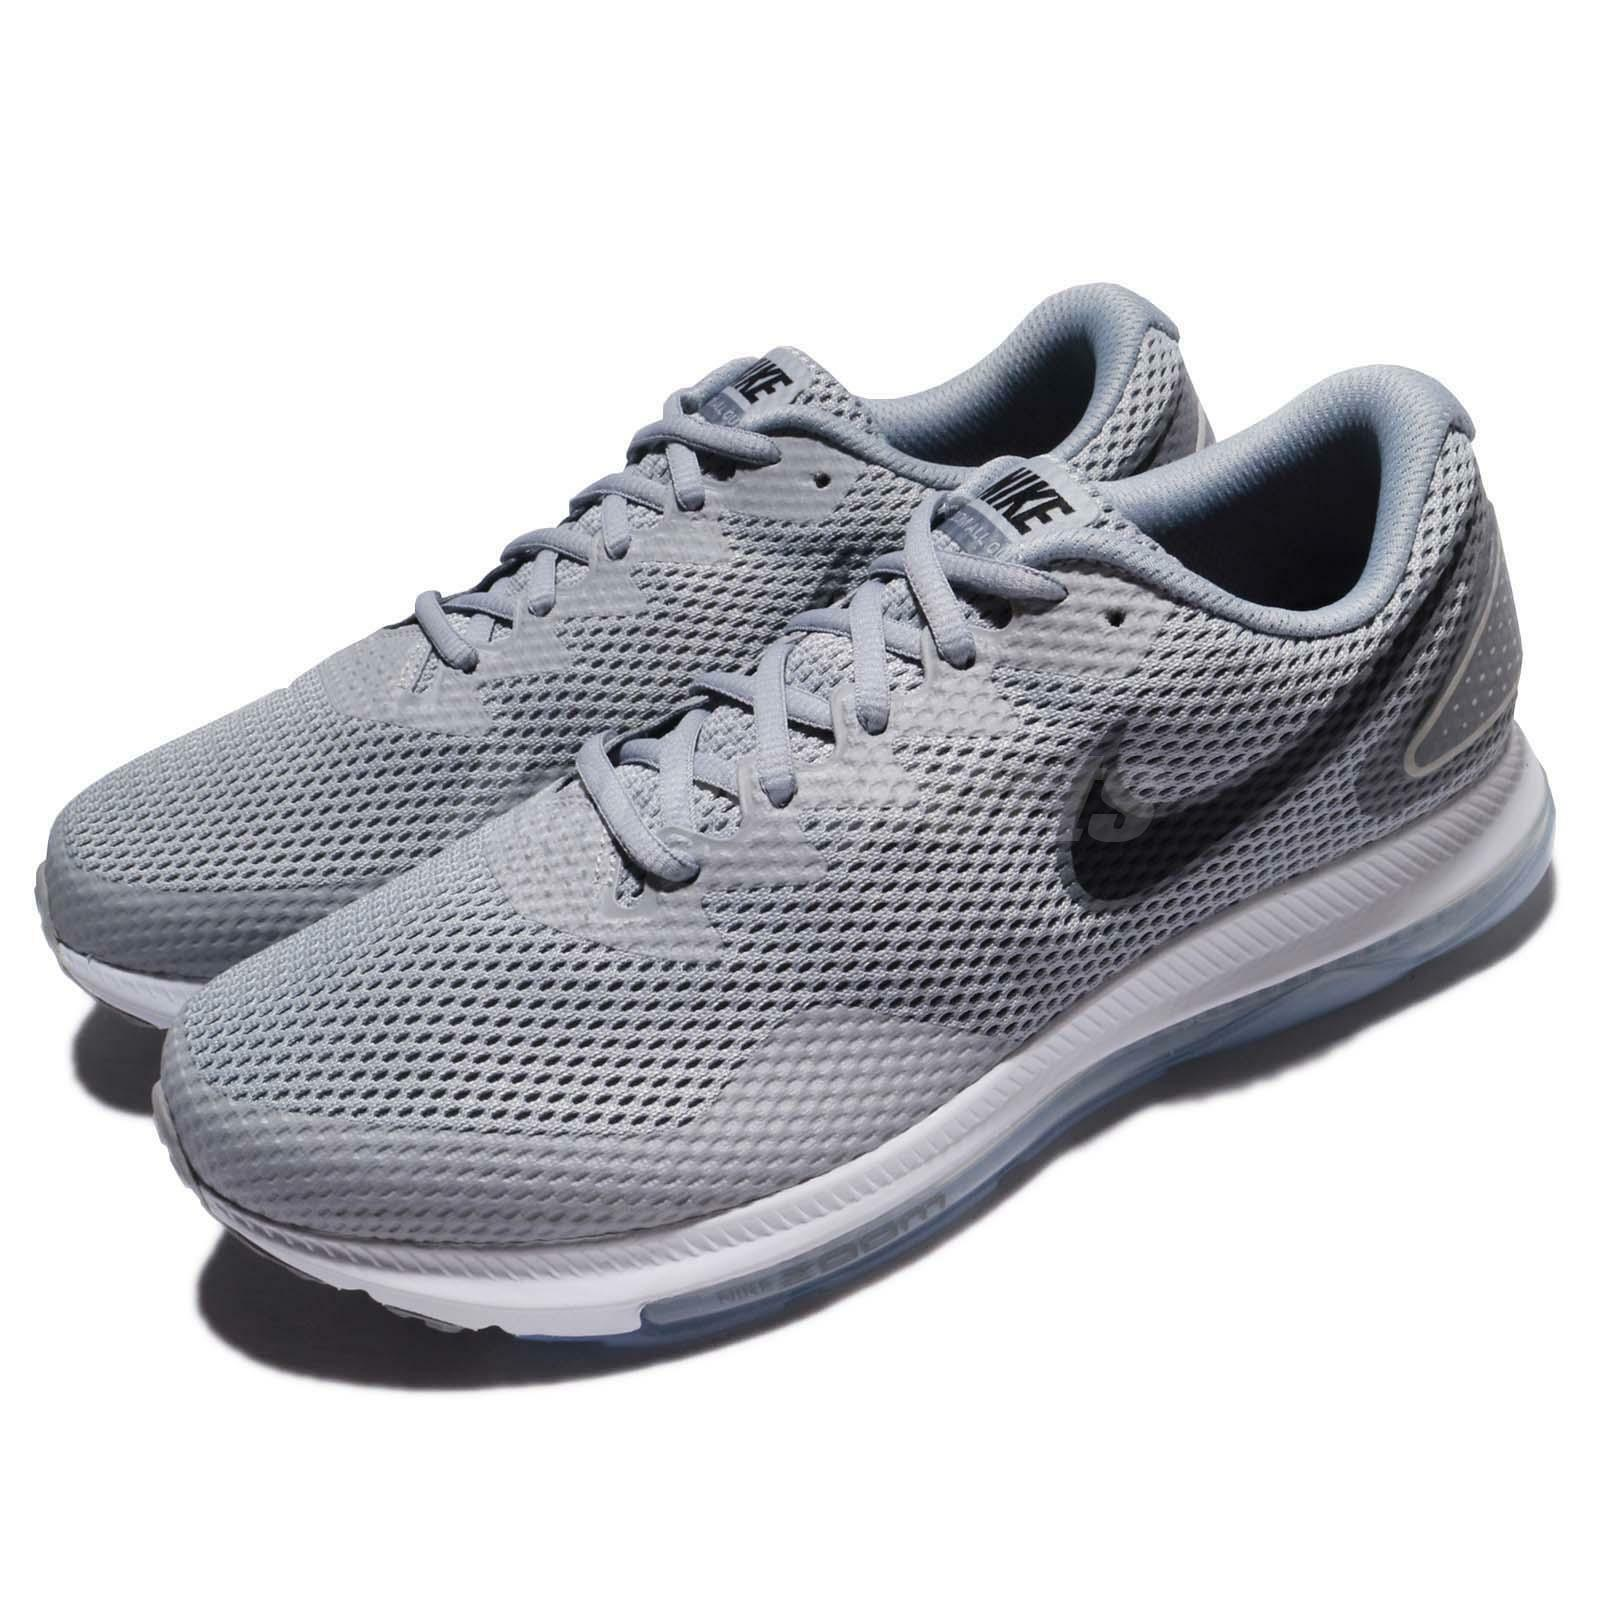 Nike Zoom All Out Flyknit Low Running Shoes Wolf Grey AJ0035 005 RARE!